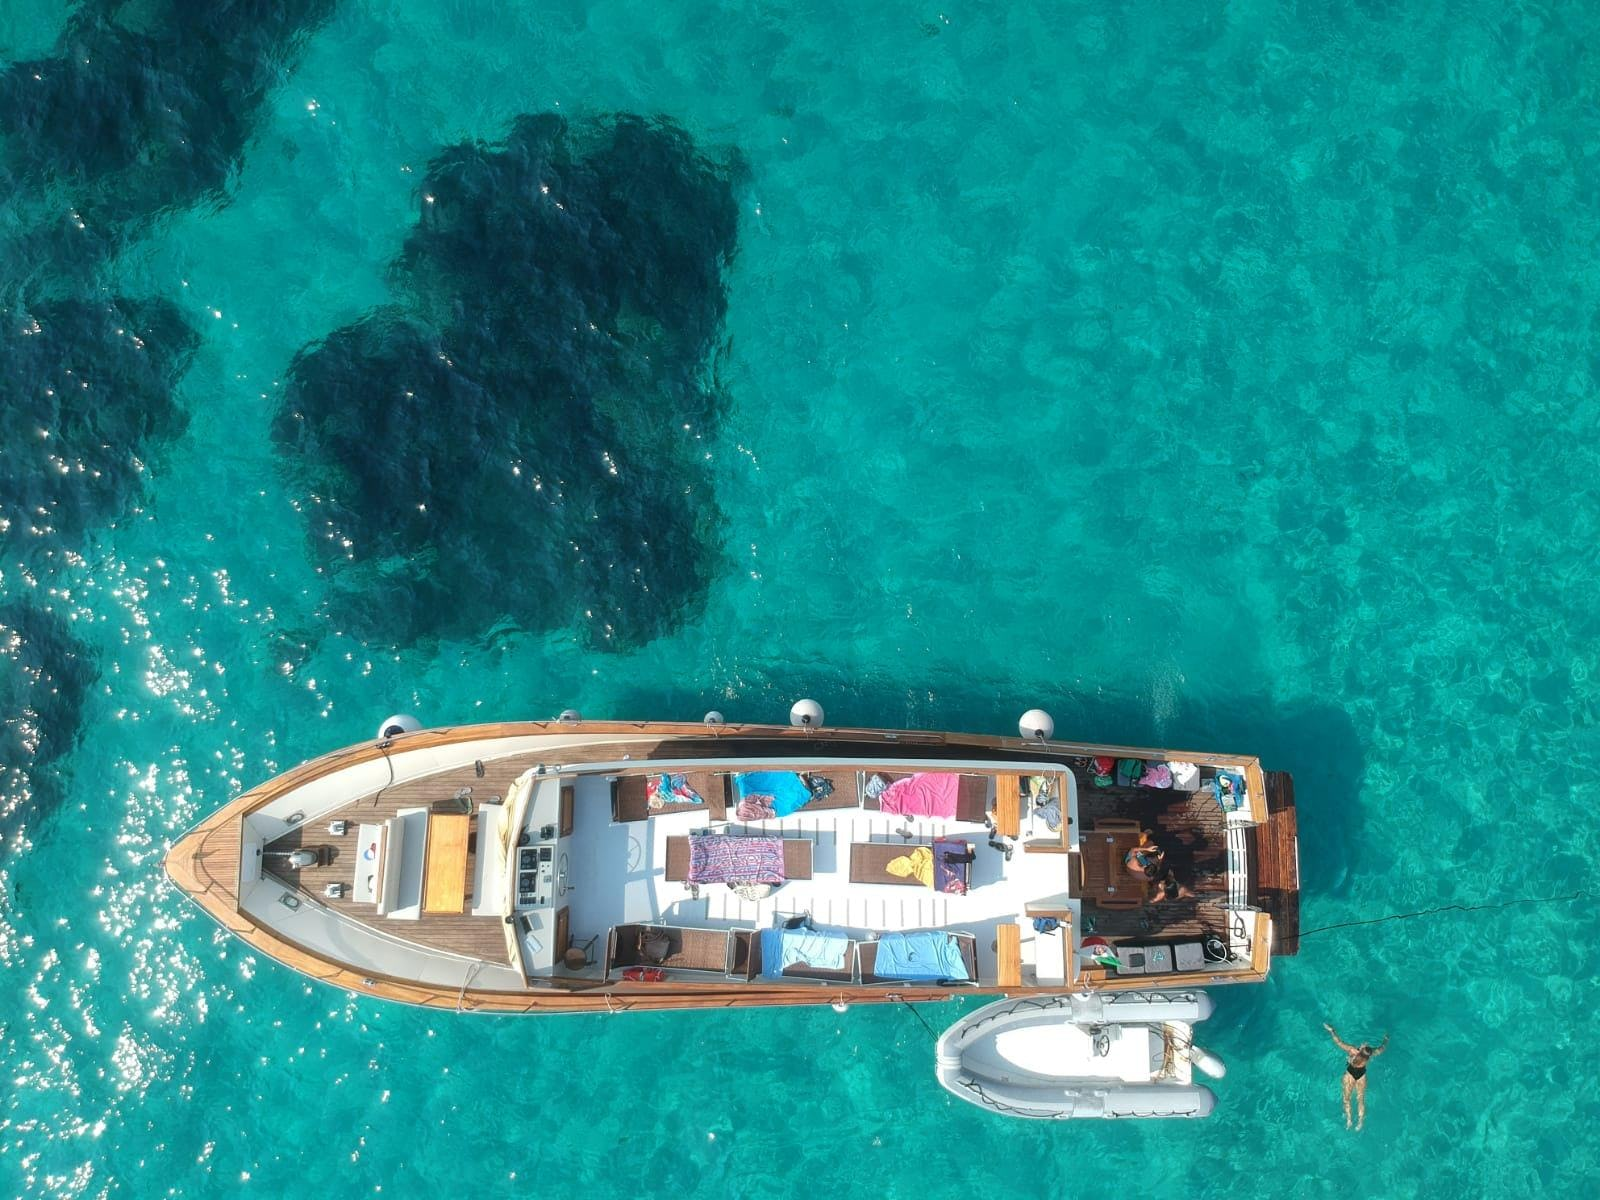 The boat Rocca Corsa is shown from above during a semi-private boat tour in La Maddalena, the sea around it is turquoise.